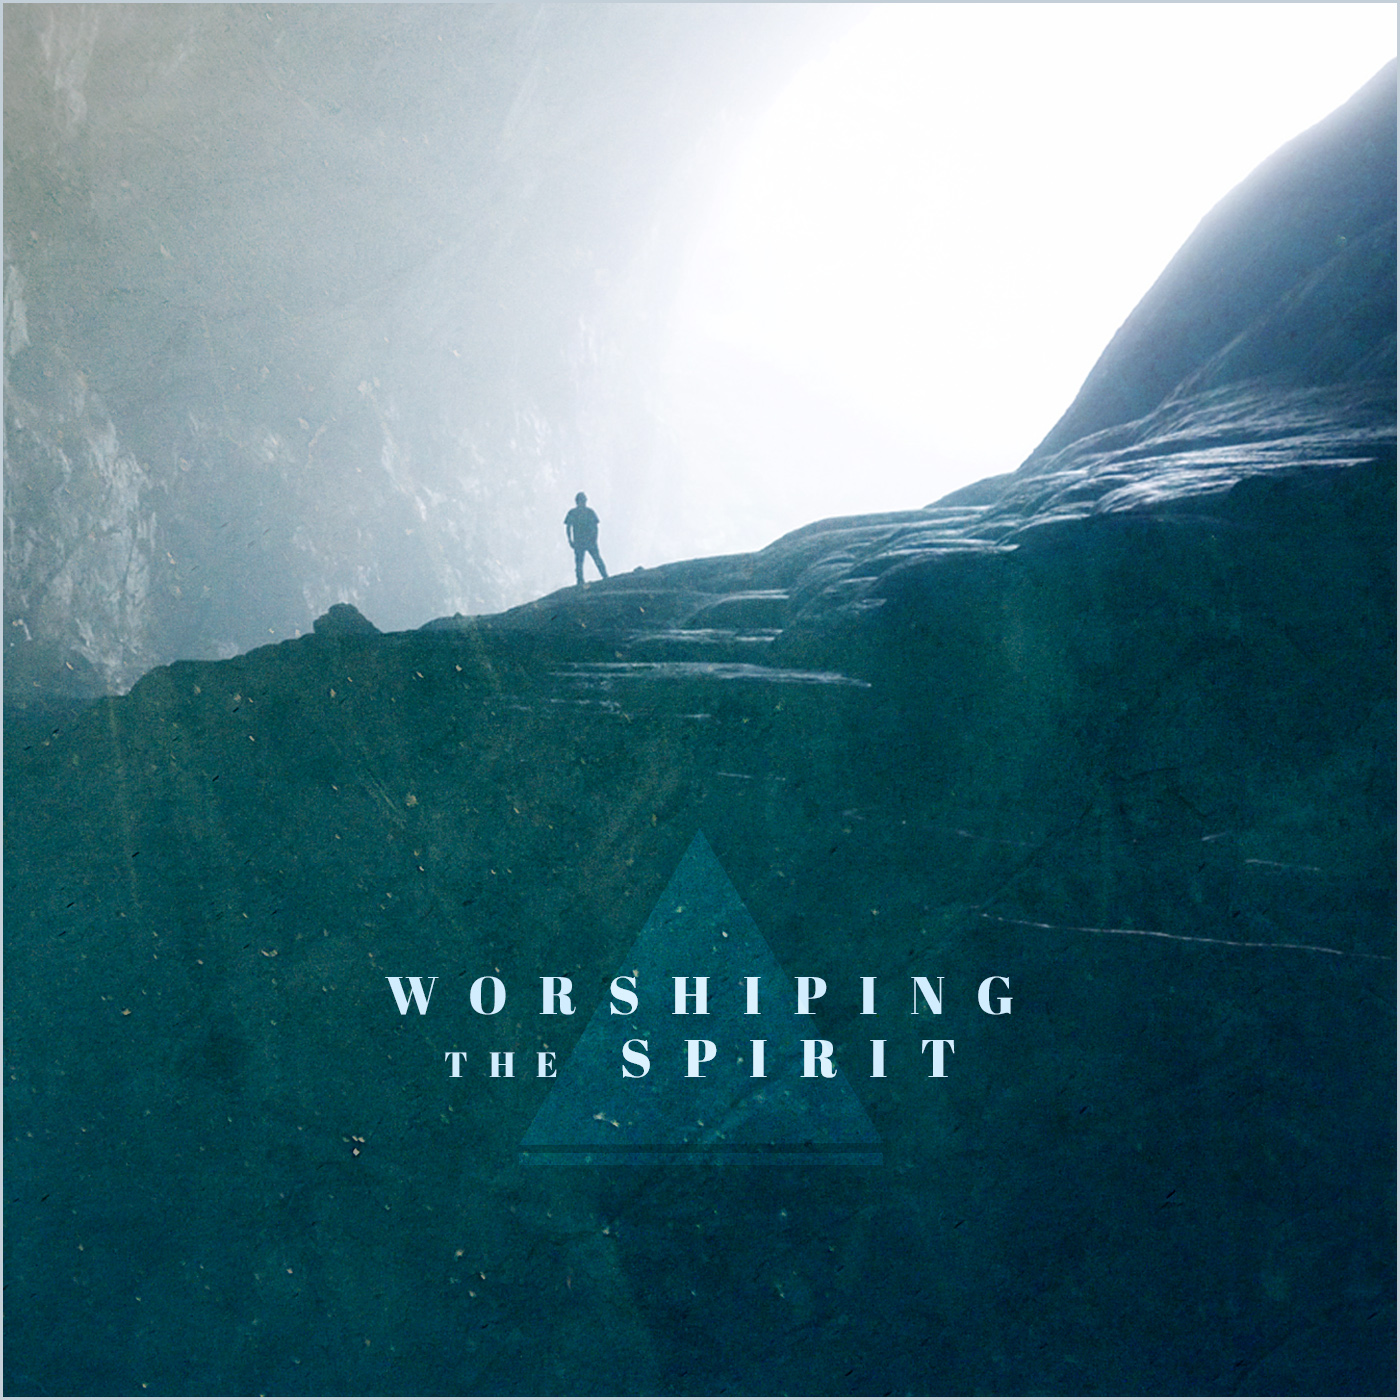 This is a sermon series on the Holy Spirit from Rockwall Presbyterian Church.